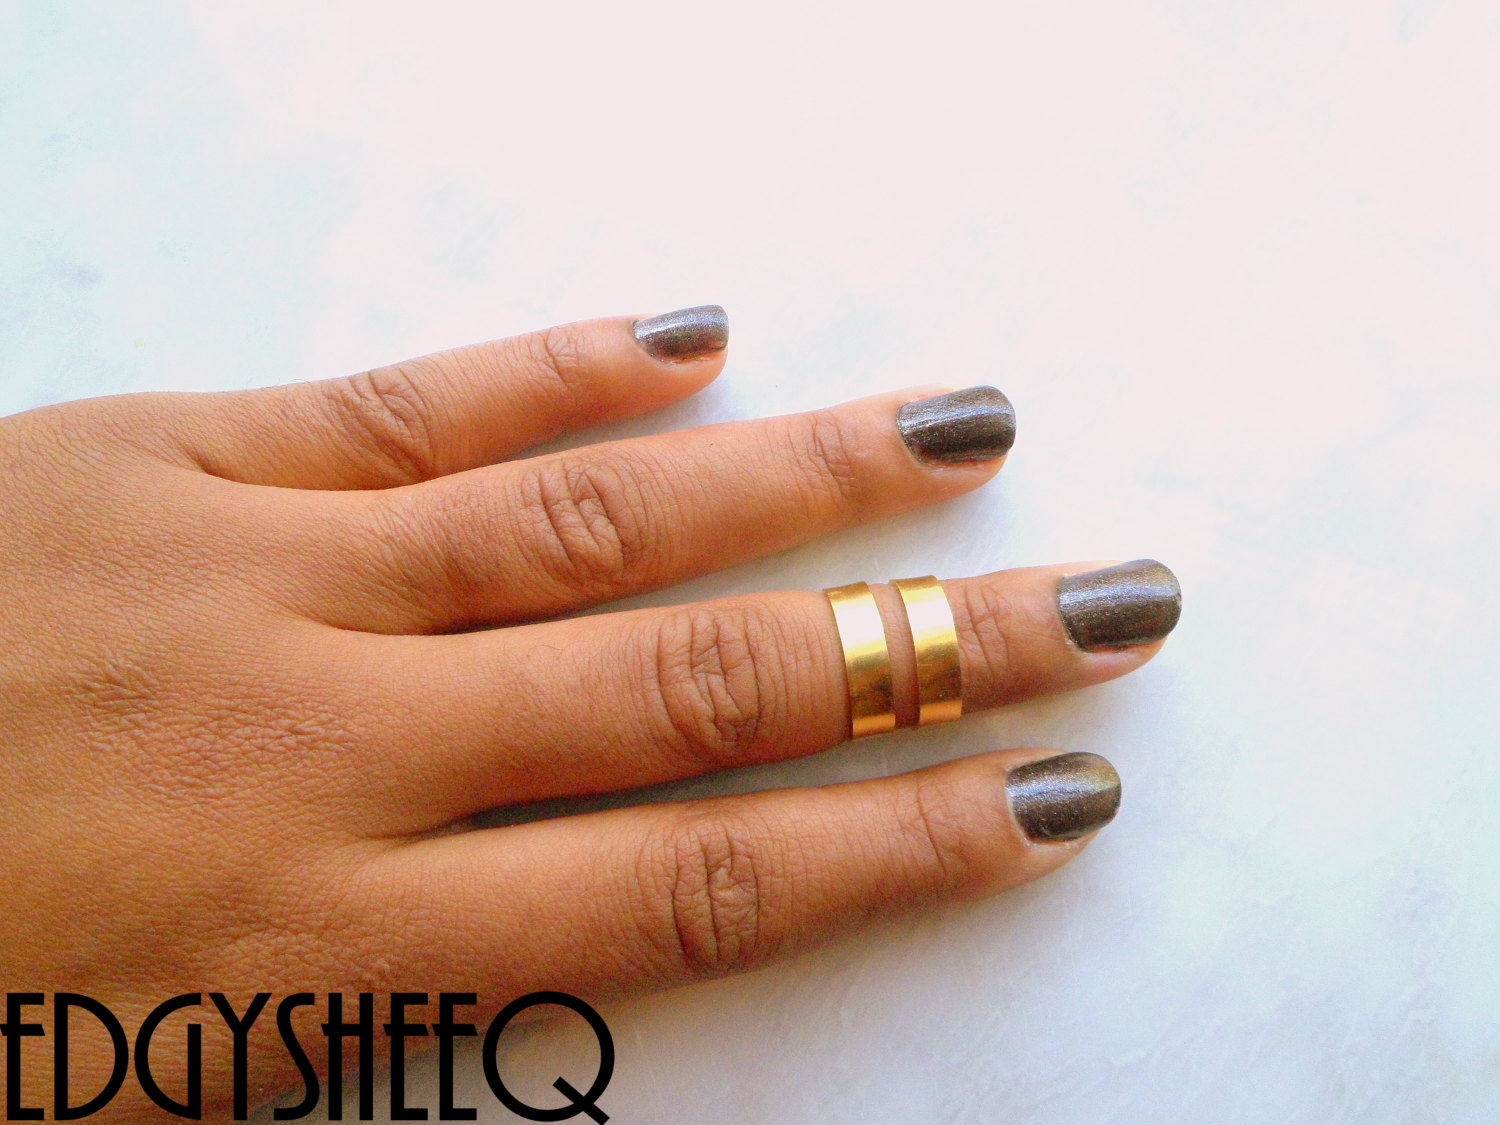 Gold Knuckle Ring,1 Smooth Band, Adjustable Midi Ring, Stacking rings, Edgysheeq statement rings for everyday Flair